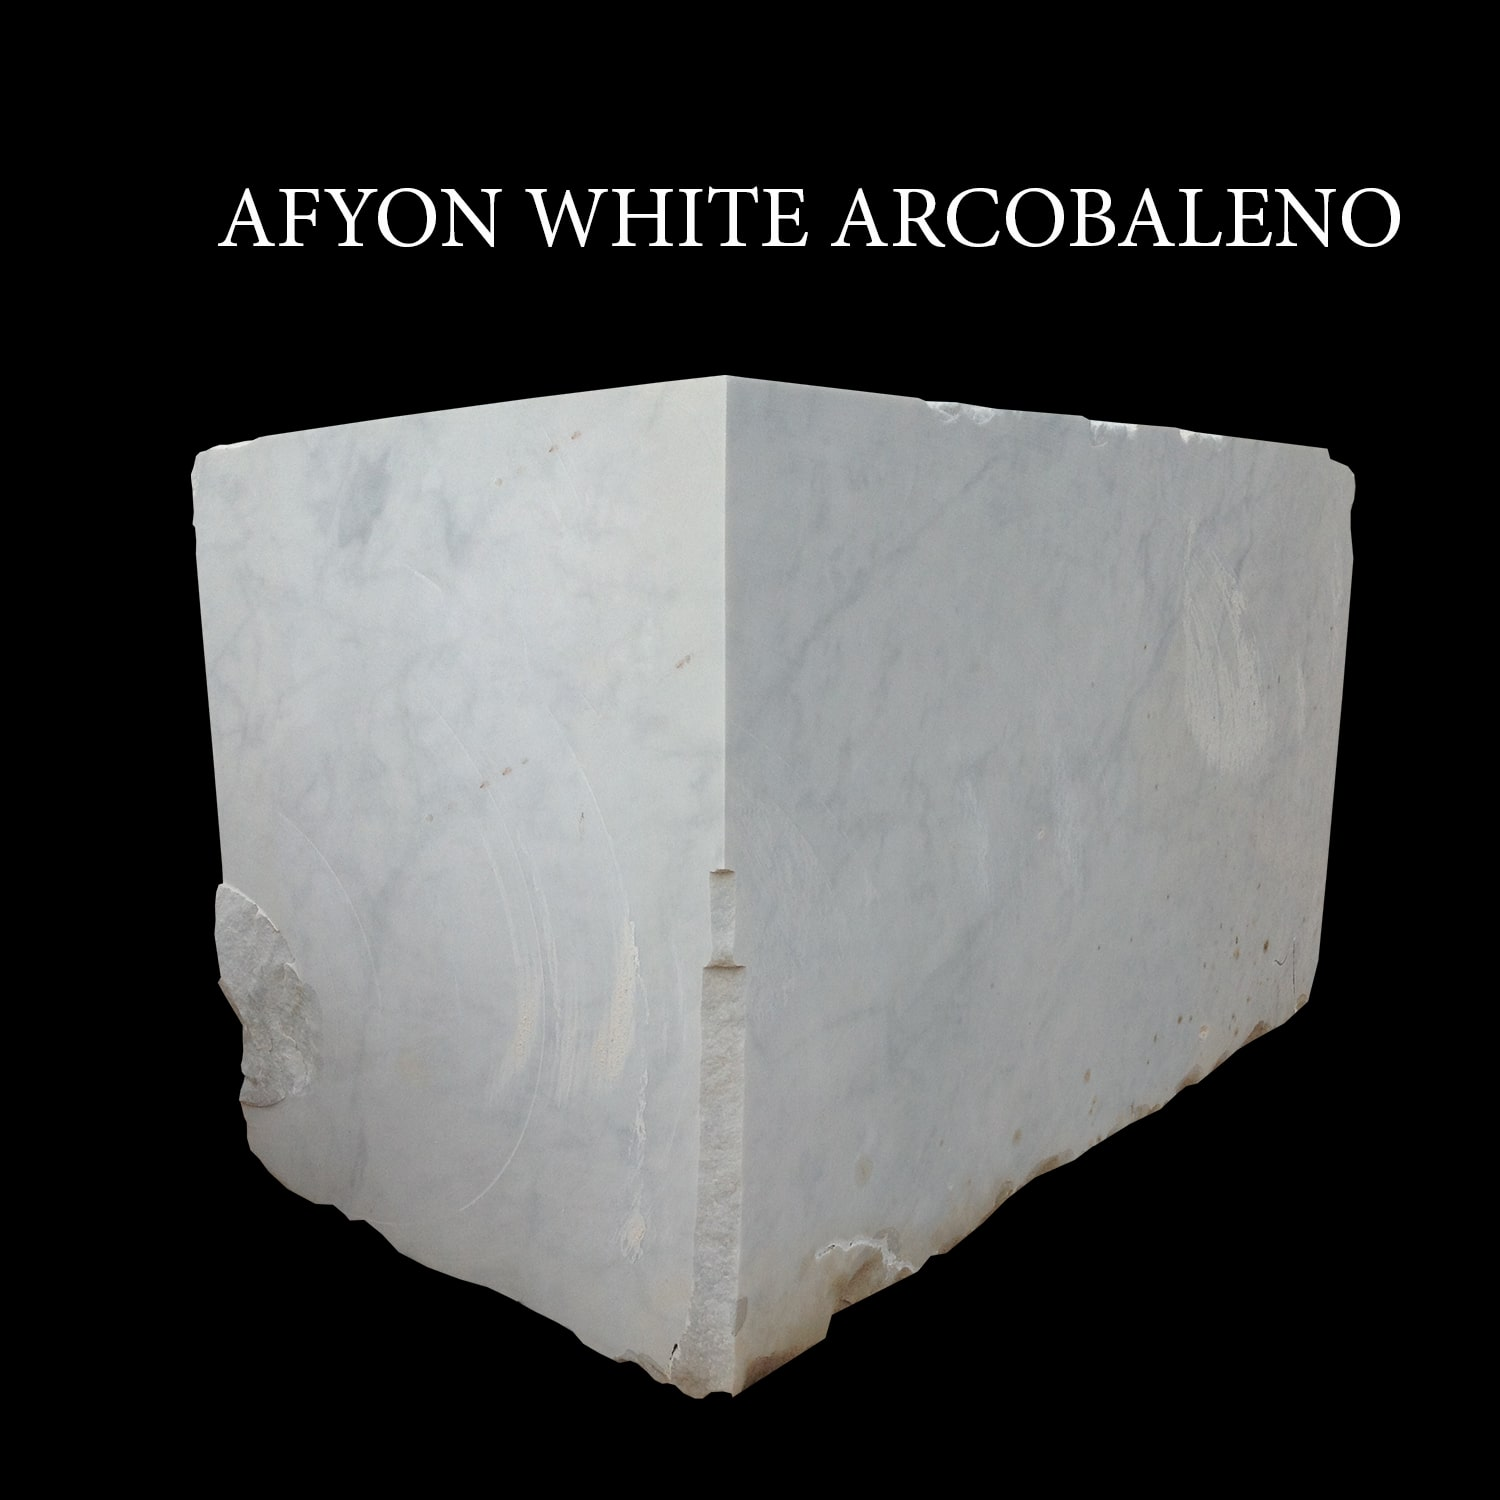 Afyon White Arcobaleno Blocks